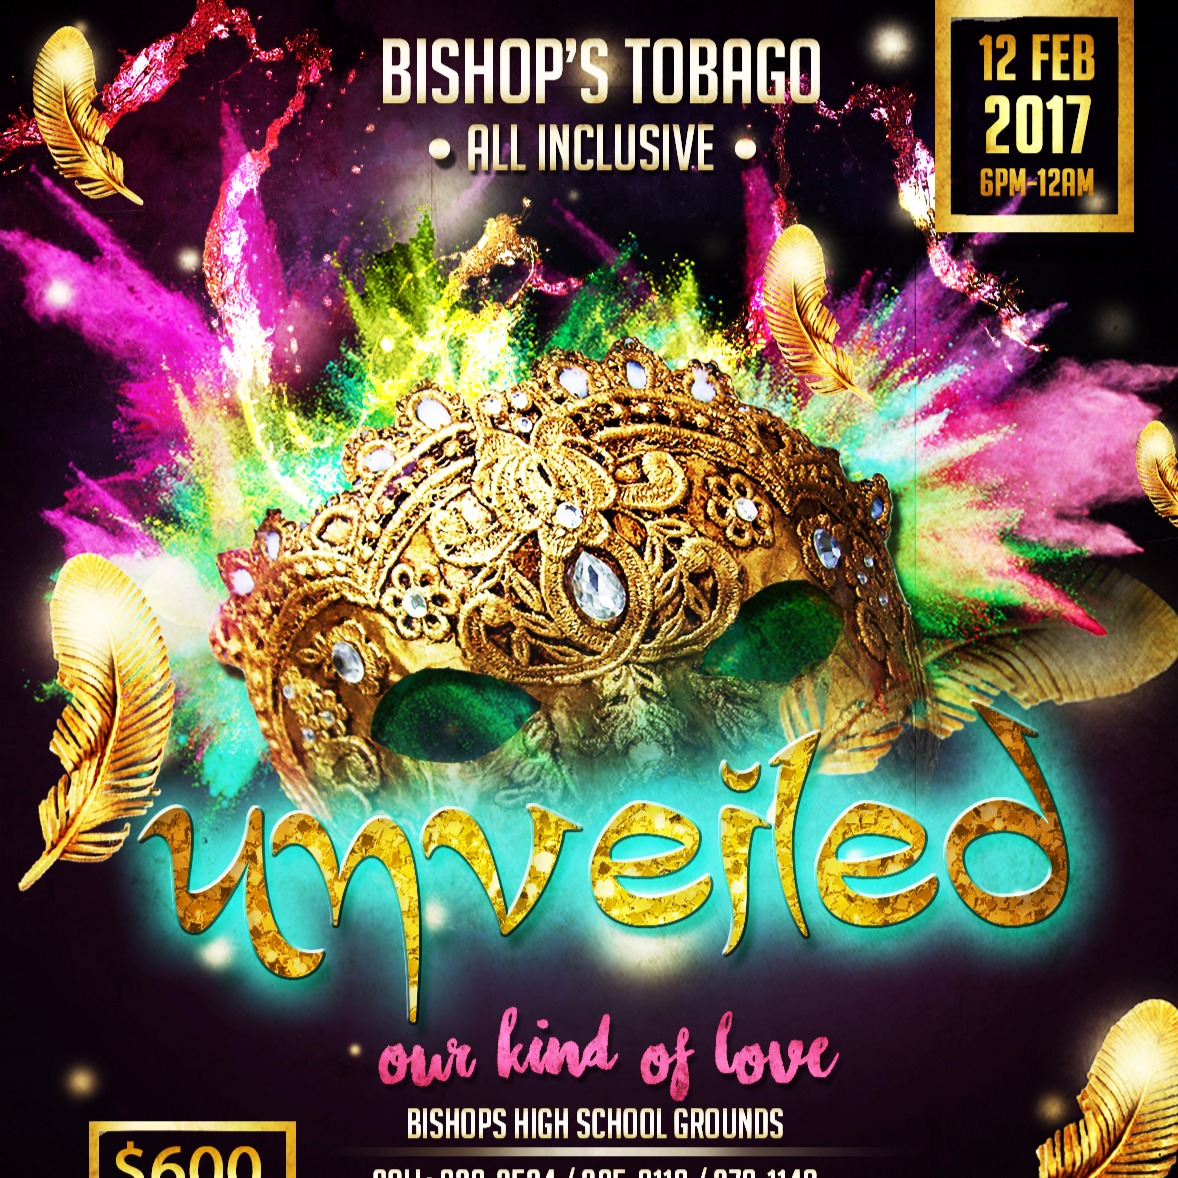 Bishop's Tobago All Inclusive - Unveiled